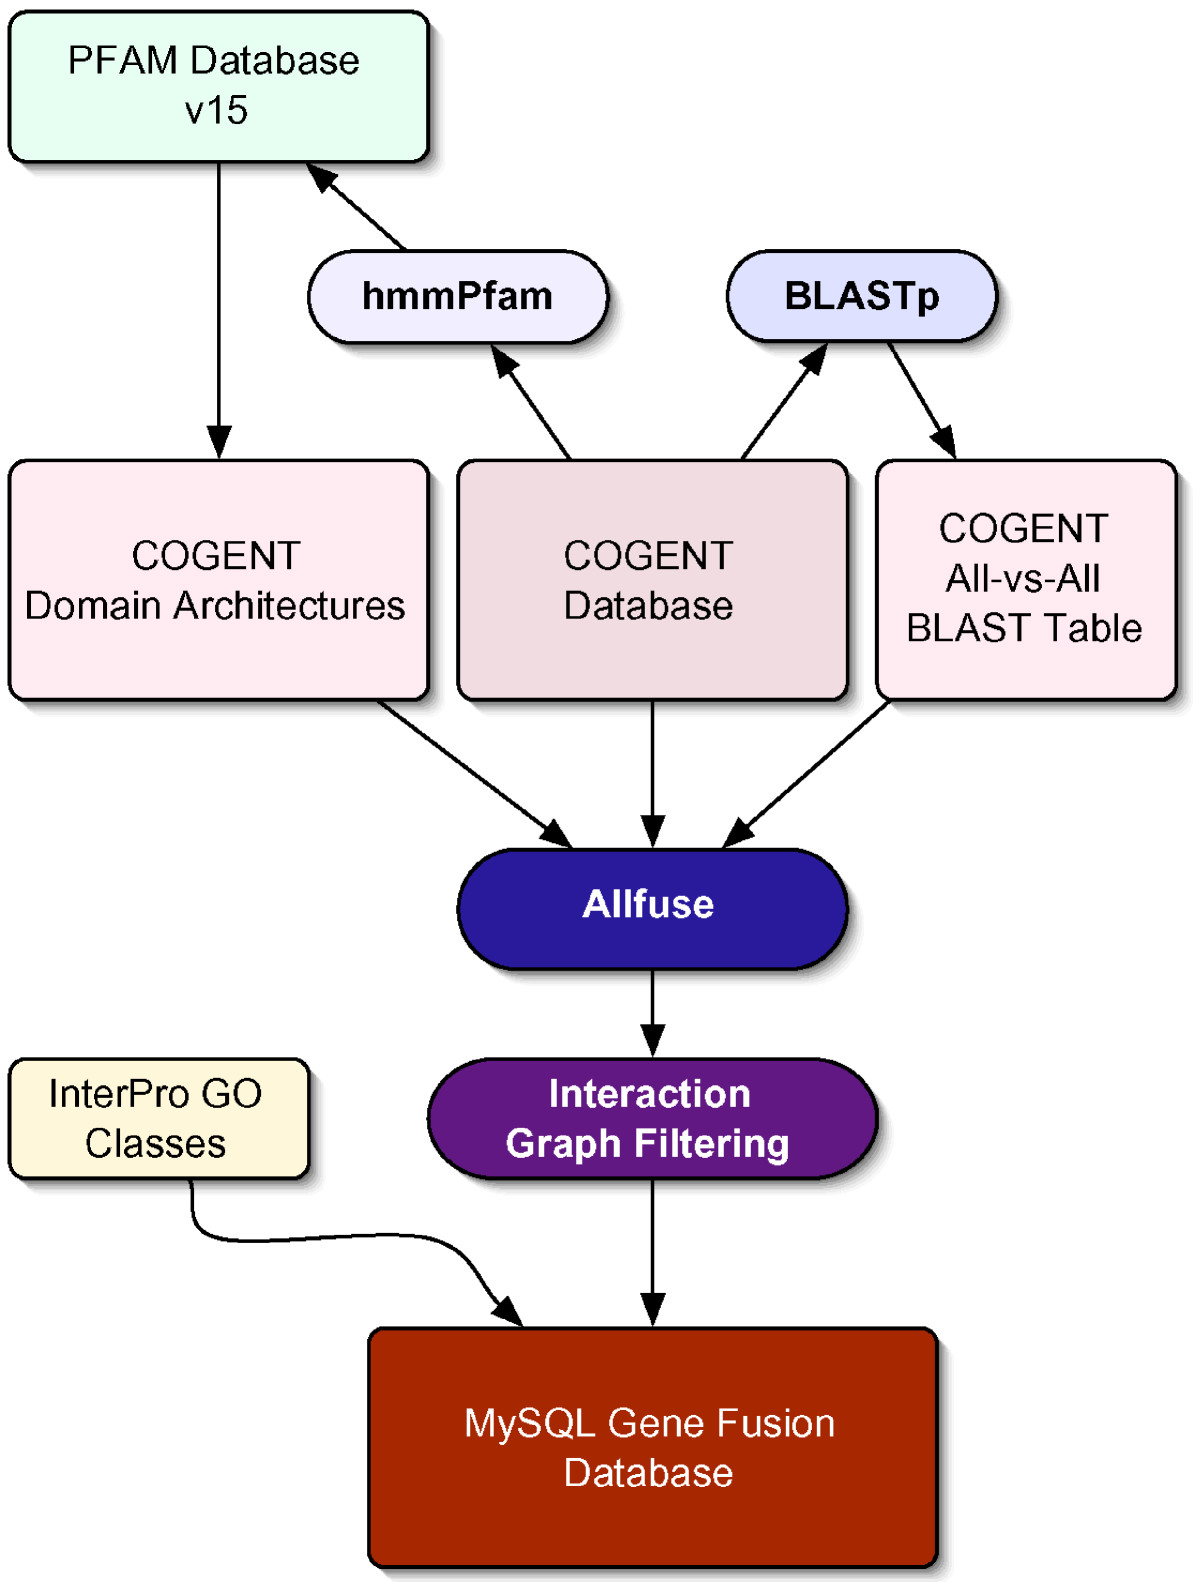 http://static-content.springer.com/image/art%3A10.1186%2F1471-2164-8-460/MediaObjects/12864_2006_Article_1173_Fig1_HTML.jpg